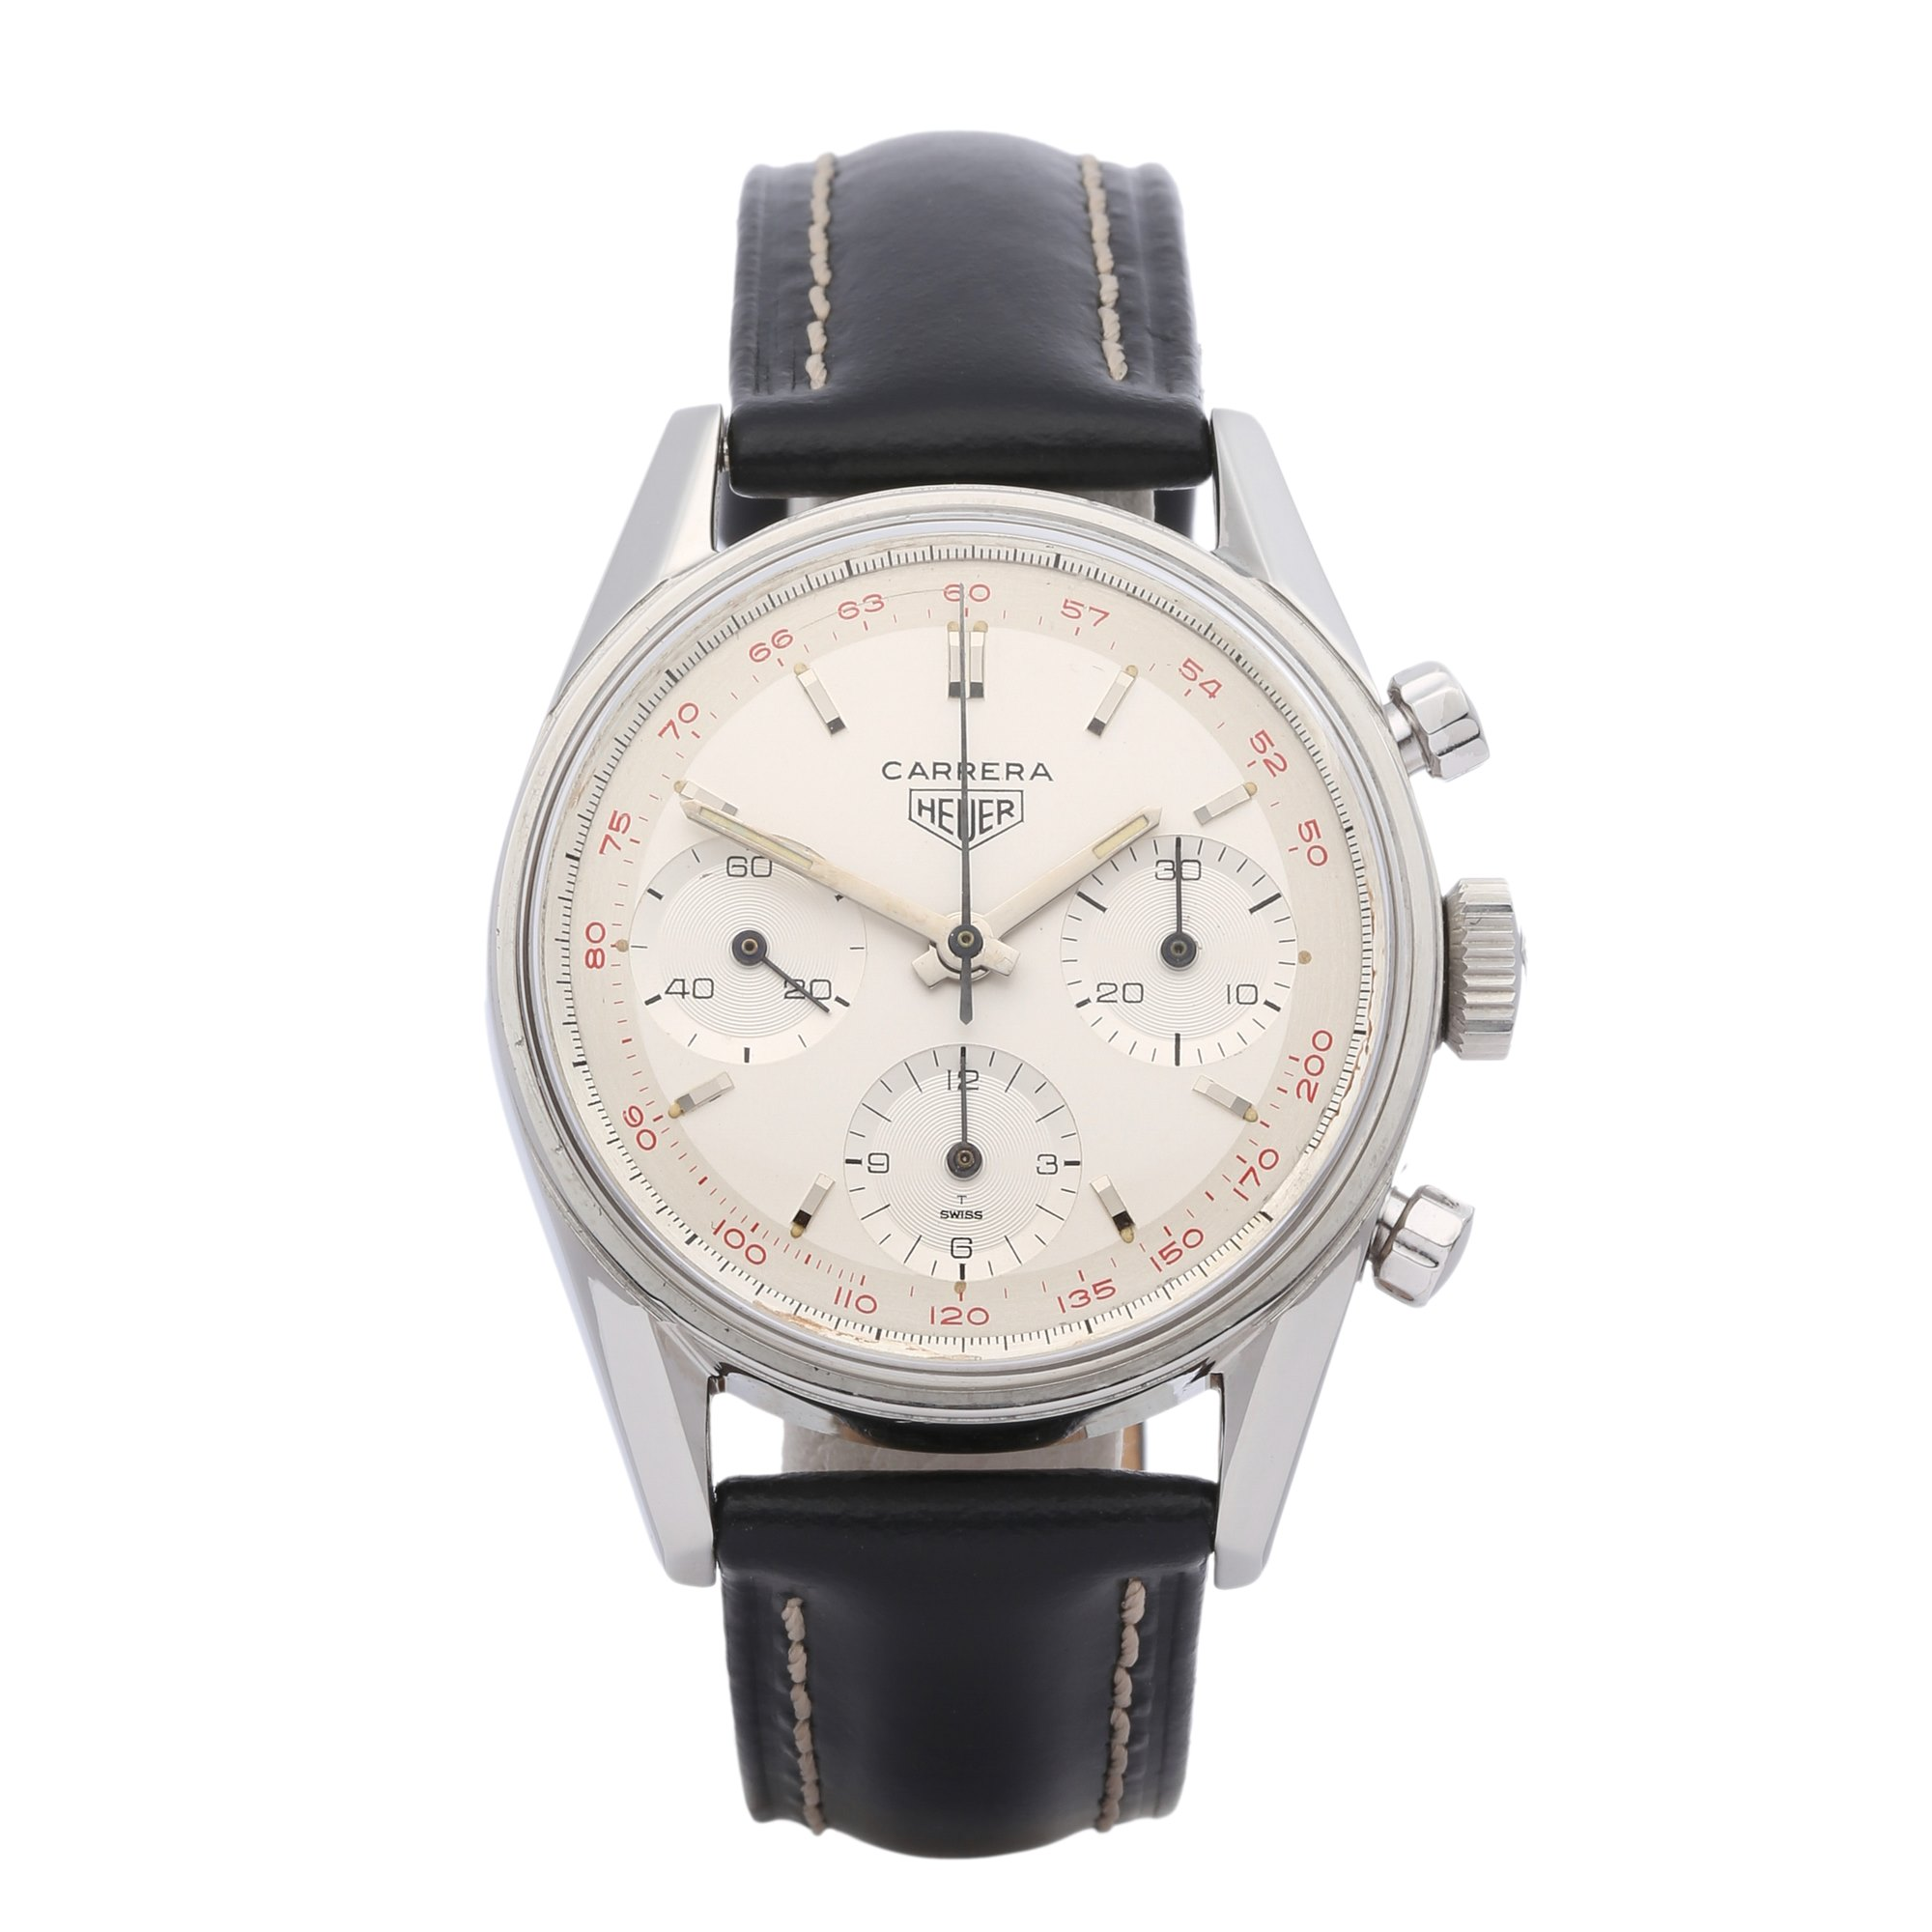 Heuer Carrera Chronograph Stainless Steel - 2447T Stainless Steel 2447T